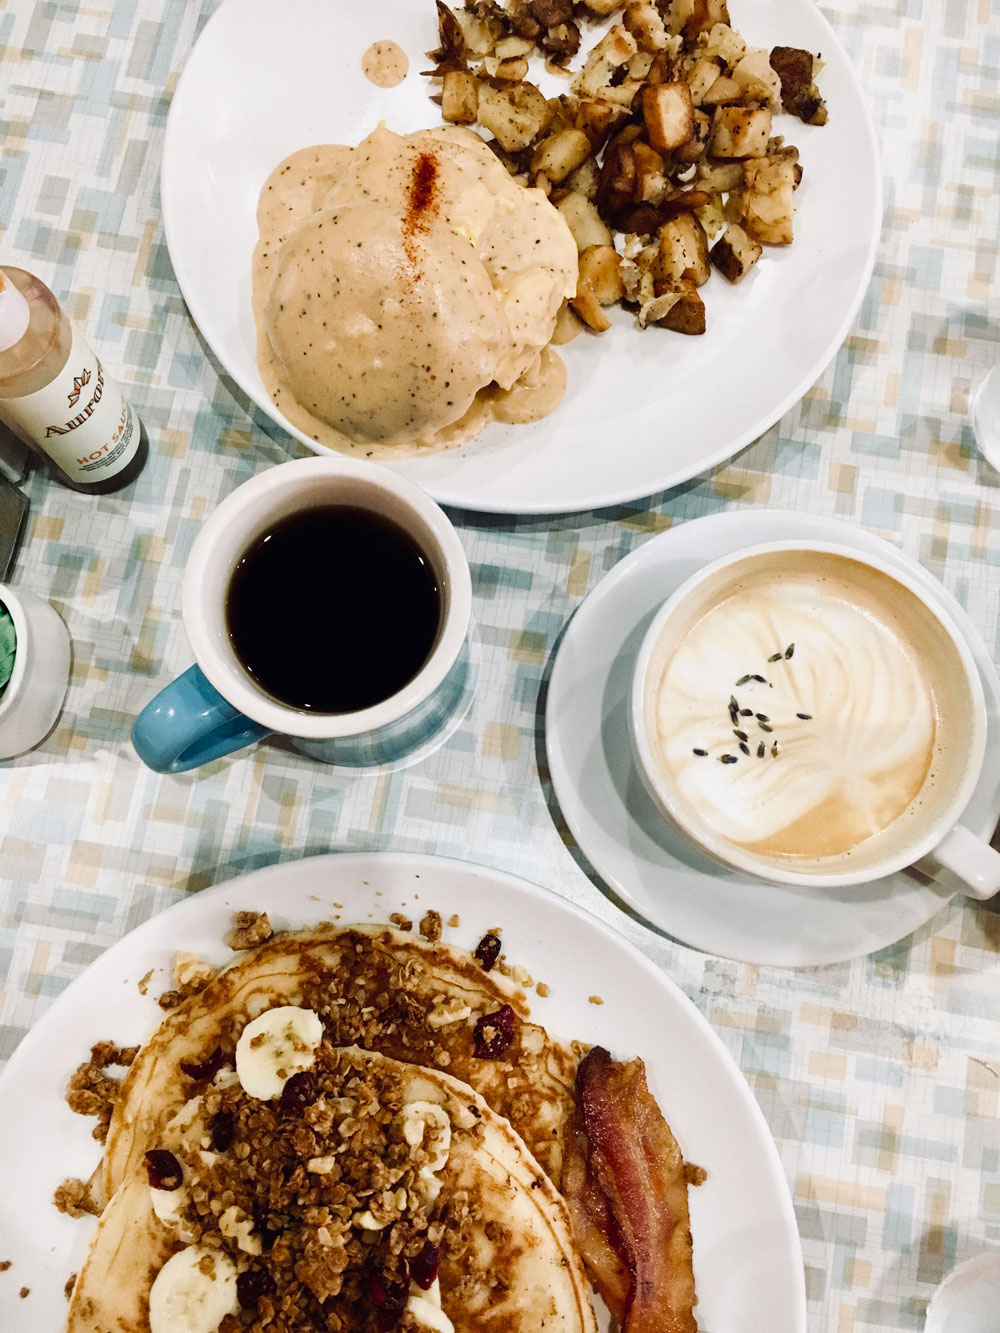 Blogger Amanda Martin's favorite breakfast spot is aurora in the plaza district of okc